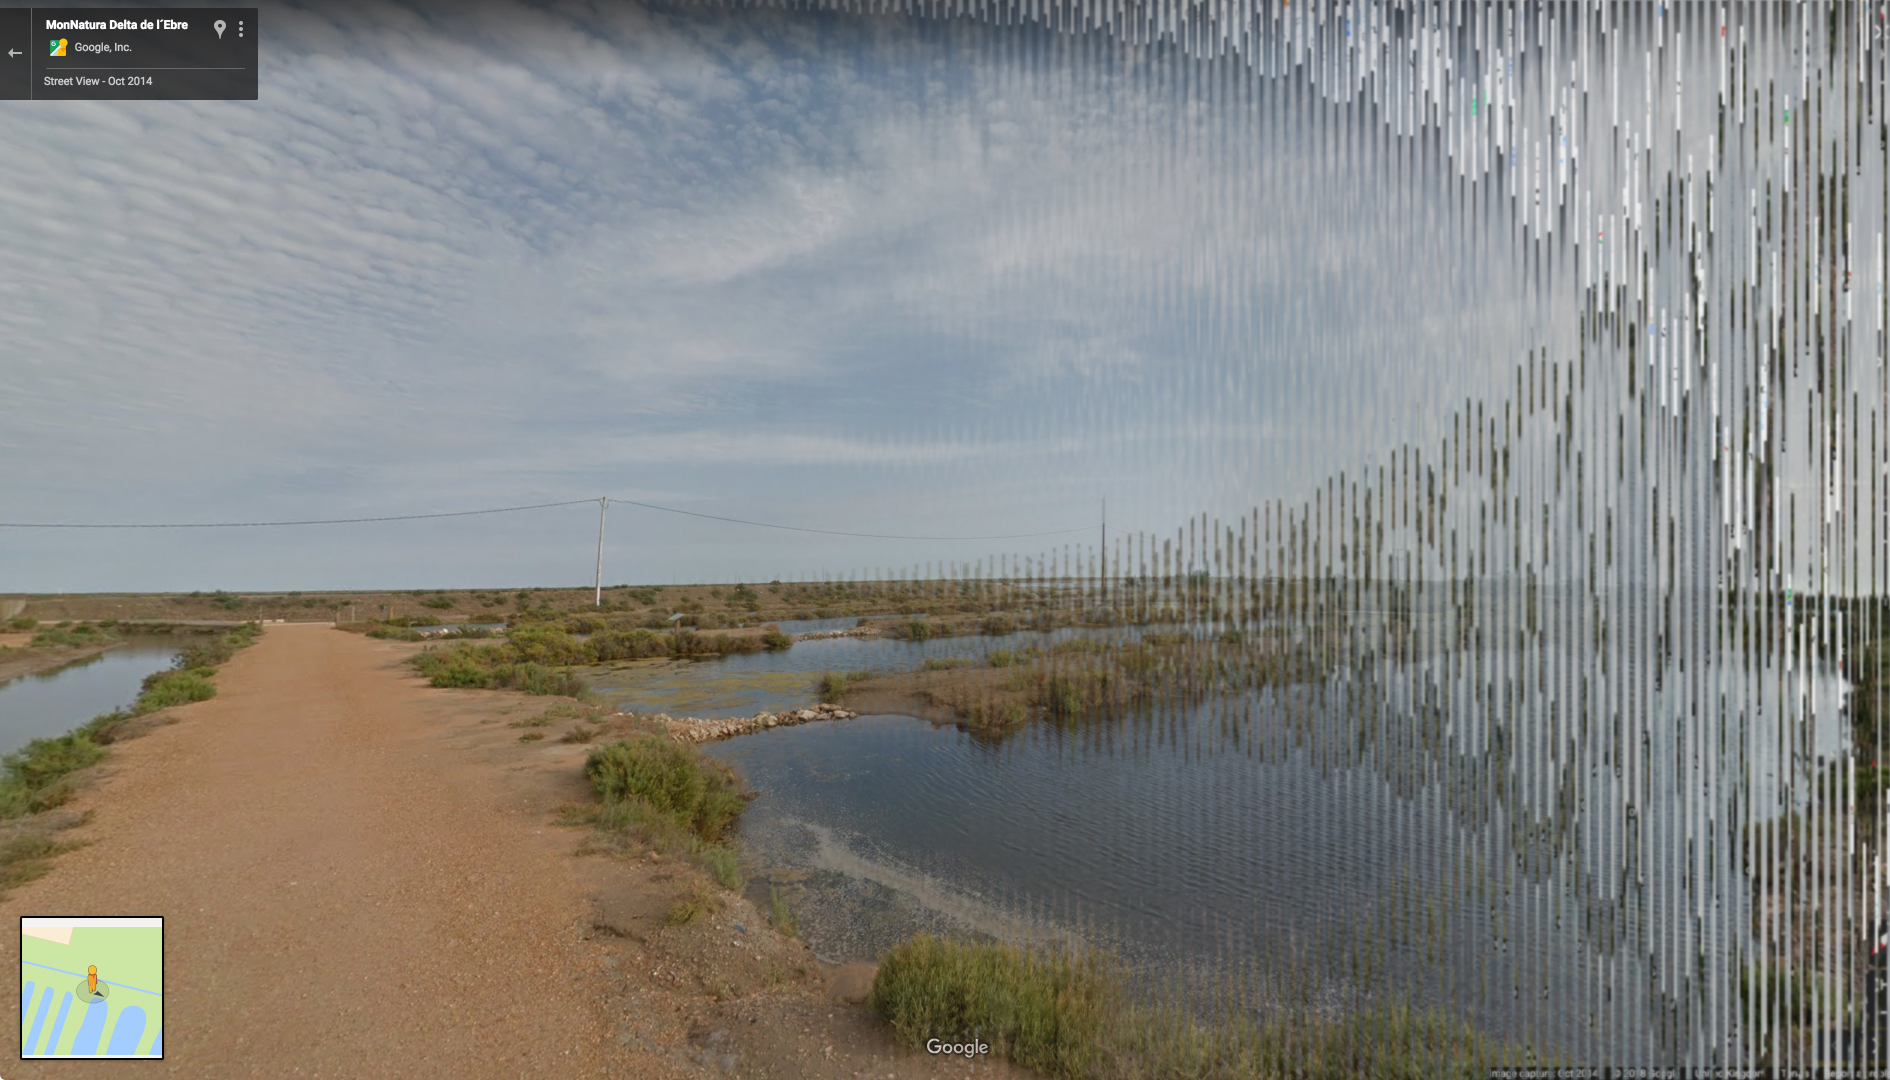 A distorted screen shot of a Google Street View showing a road in the Ebro delta